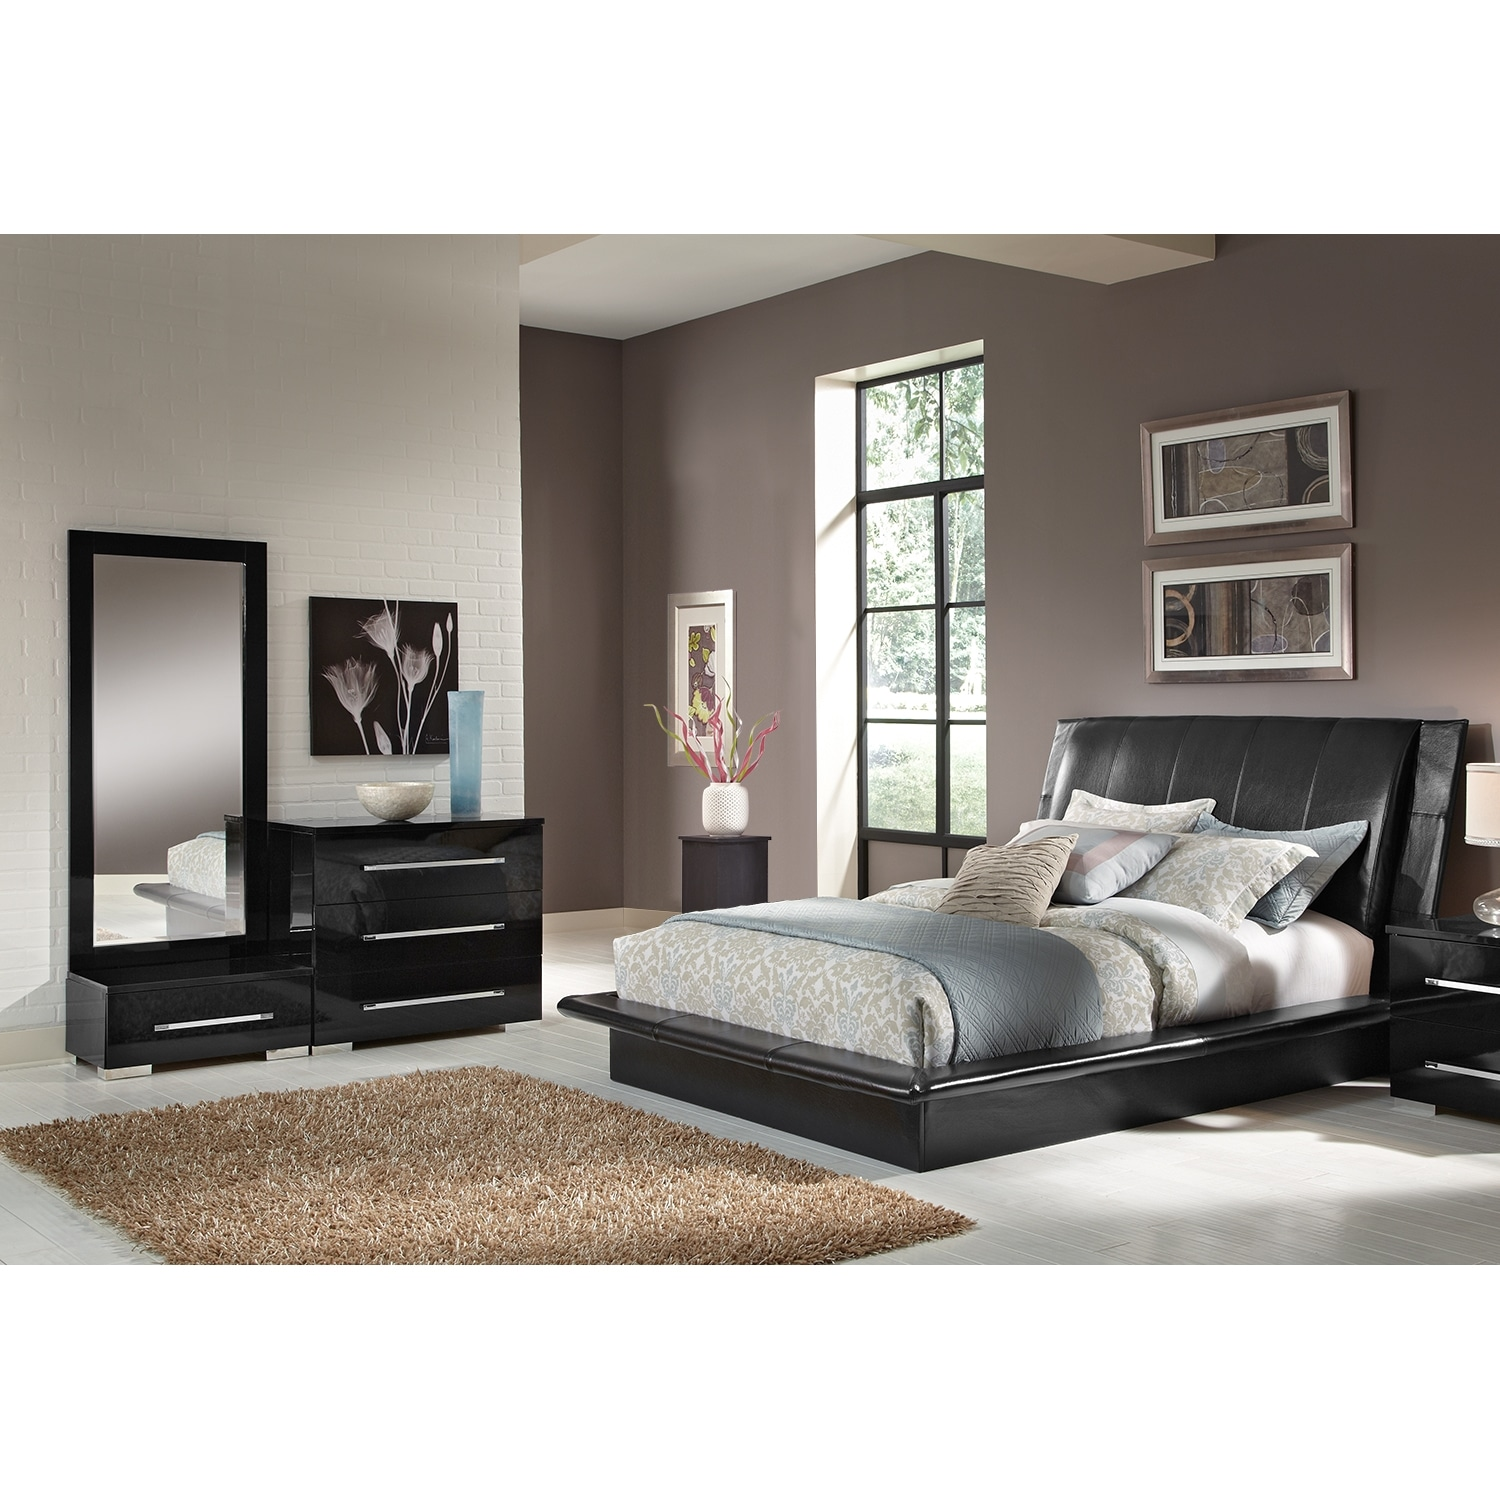 Dimora 5-Piece Queen Upholstered Bedroom Set - Black